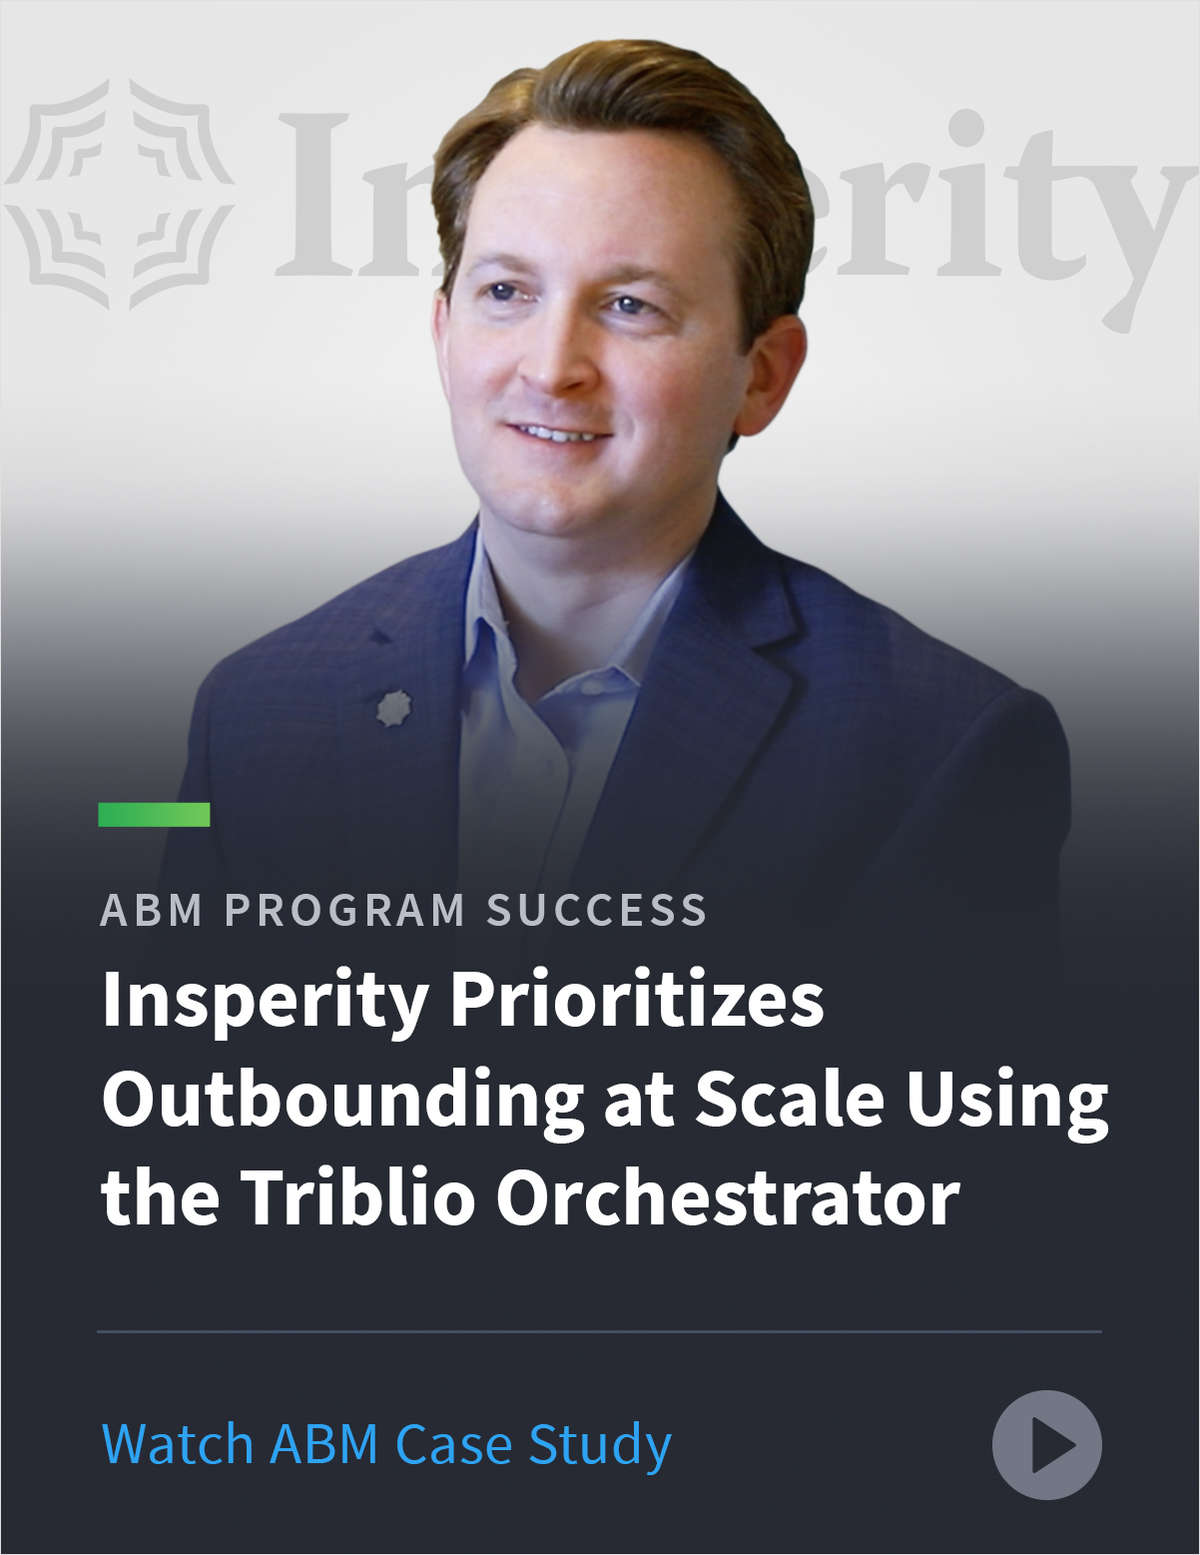 Insperity uses ABM to Prioritize Outbounding at Scale